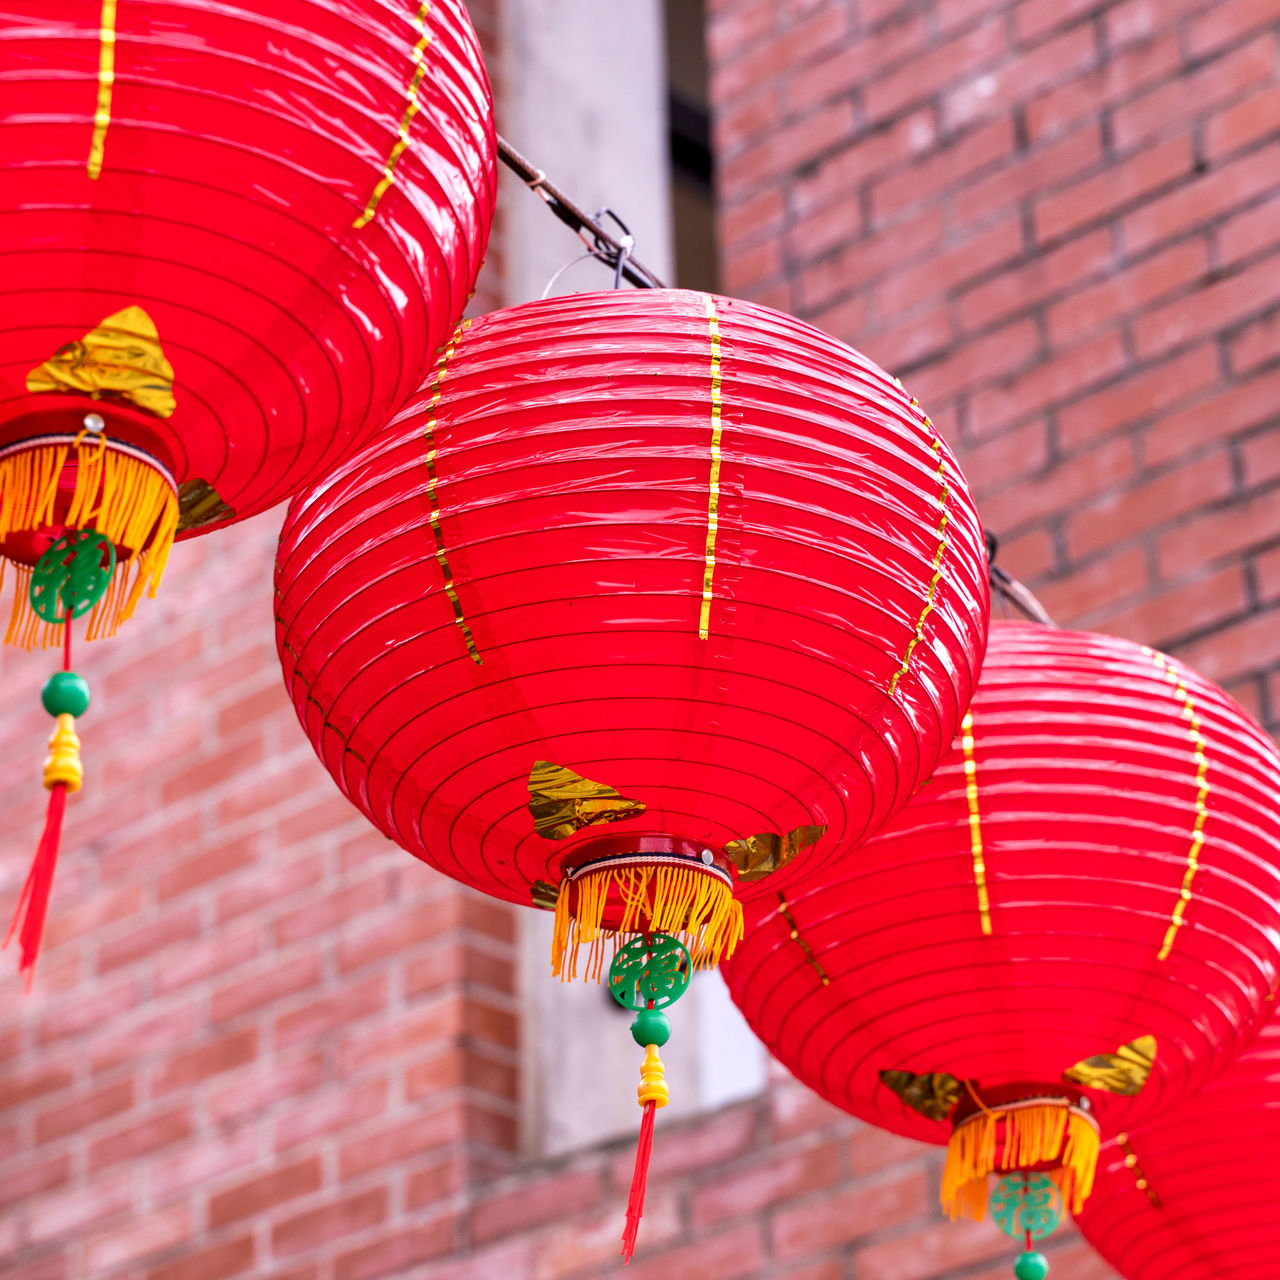 LOW ANGLE VIEW OF LANTERNS HANGING ON BUILDING